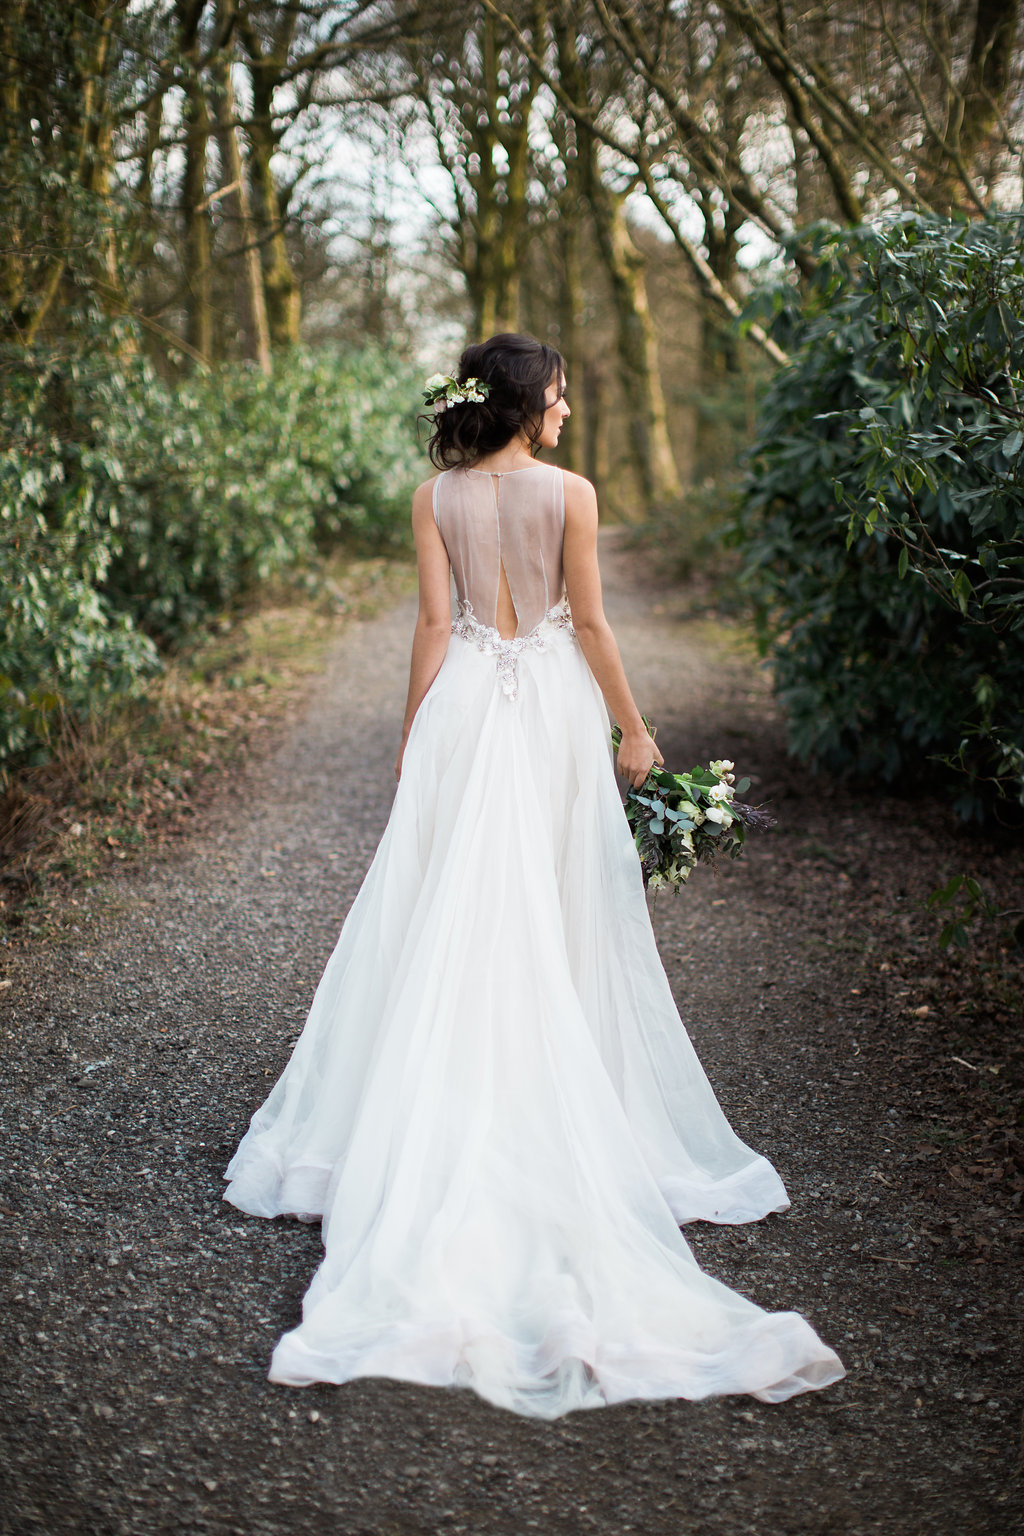 Inspirational woodland wedding shoot weddingomania for Nature inspired wedding dresses